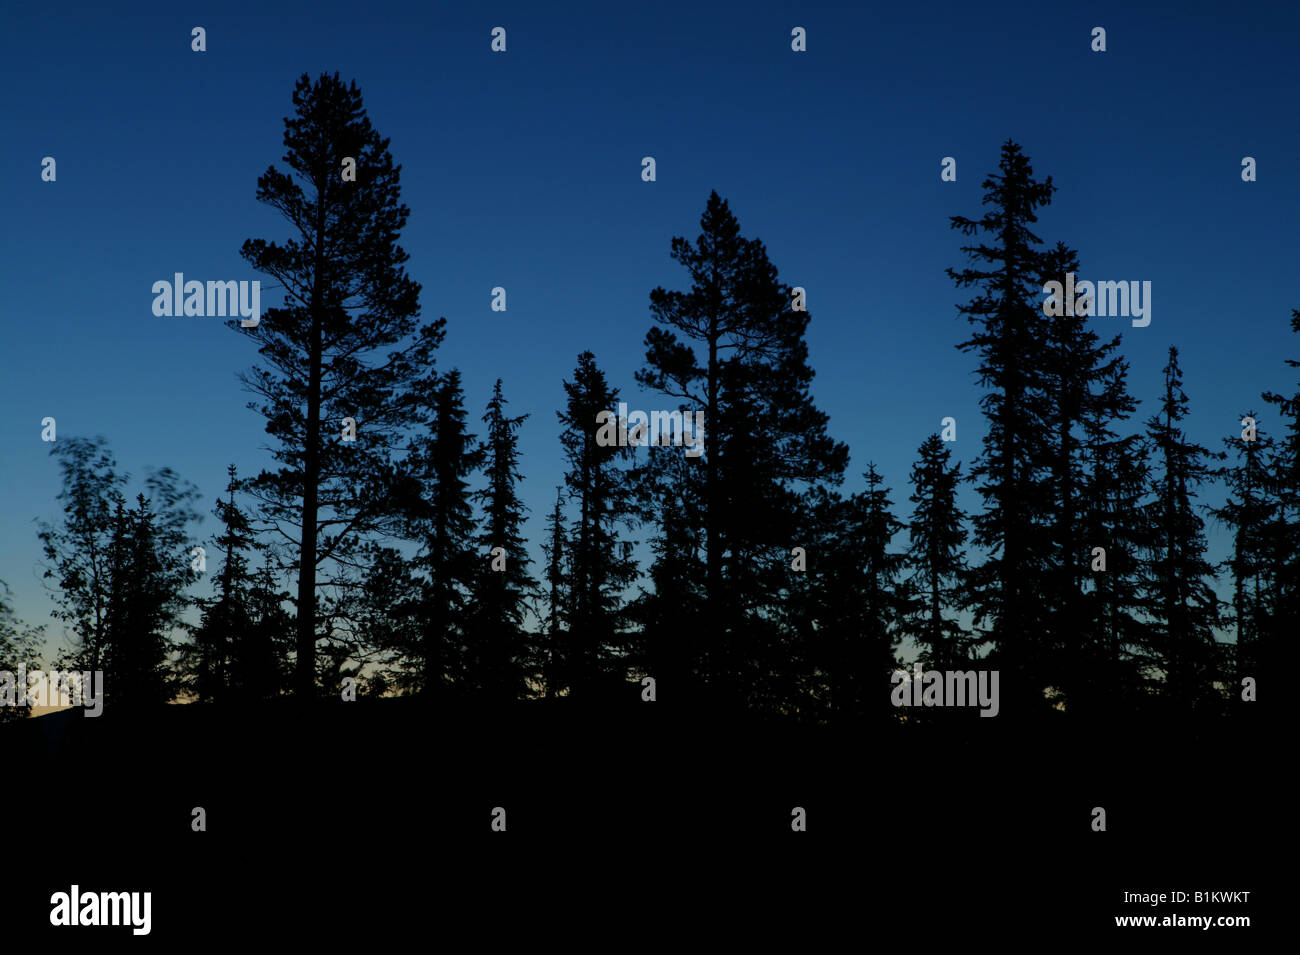 Forest at night at the mountain Andersnatten in Eggedal, Buskerud fylke, Norway. Stock Photo